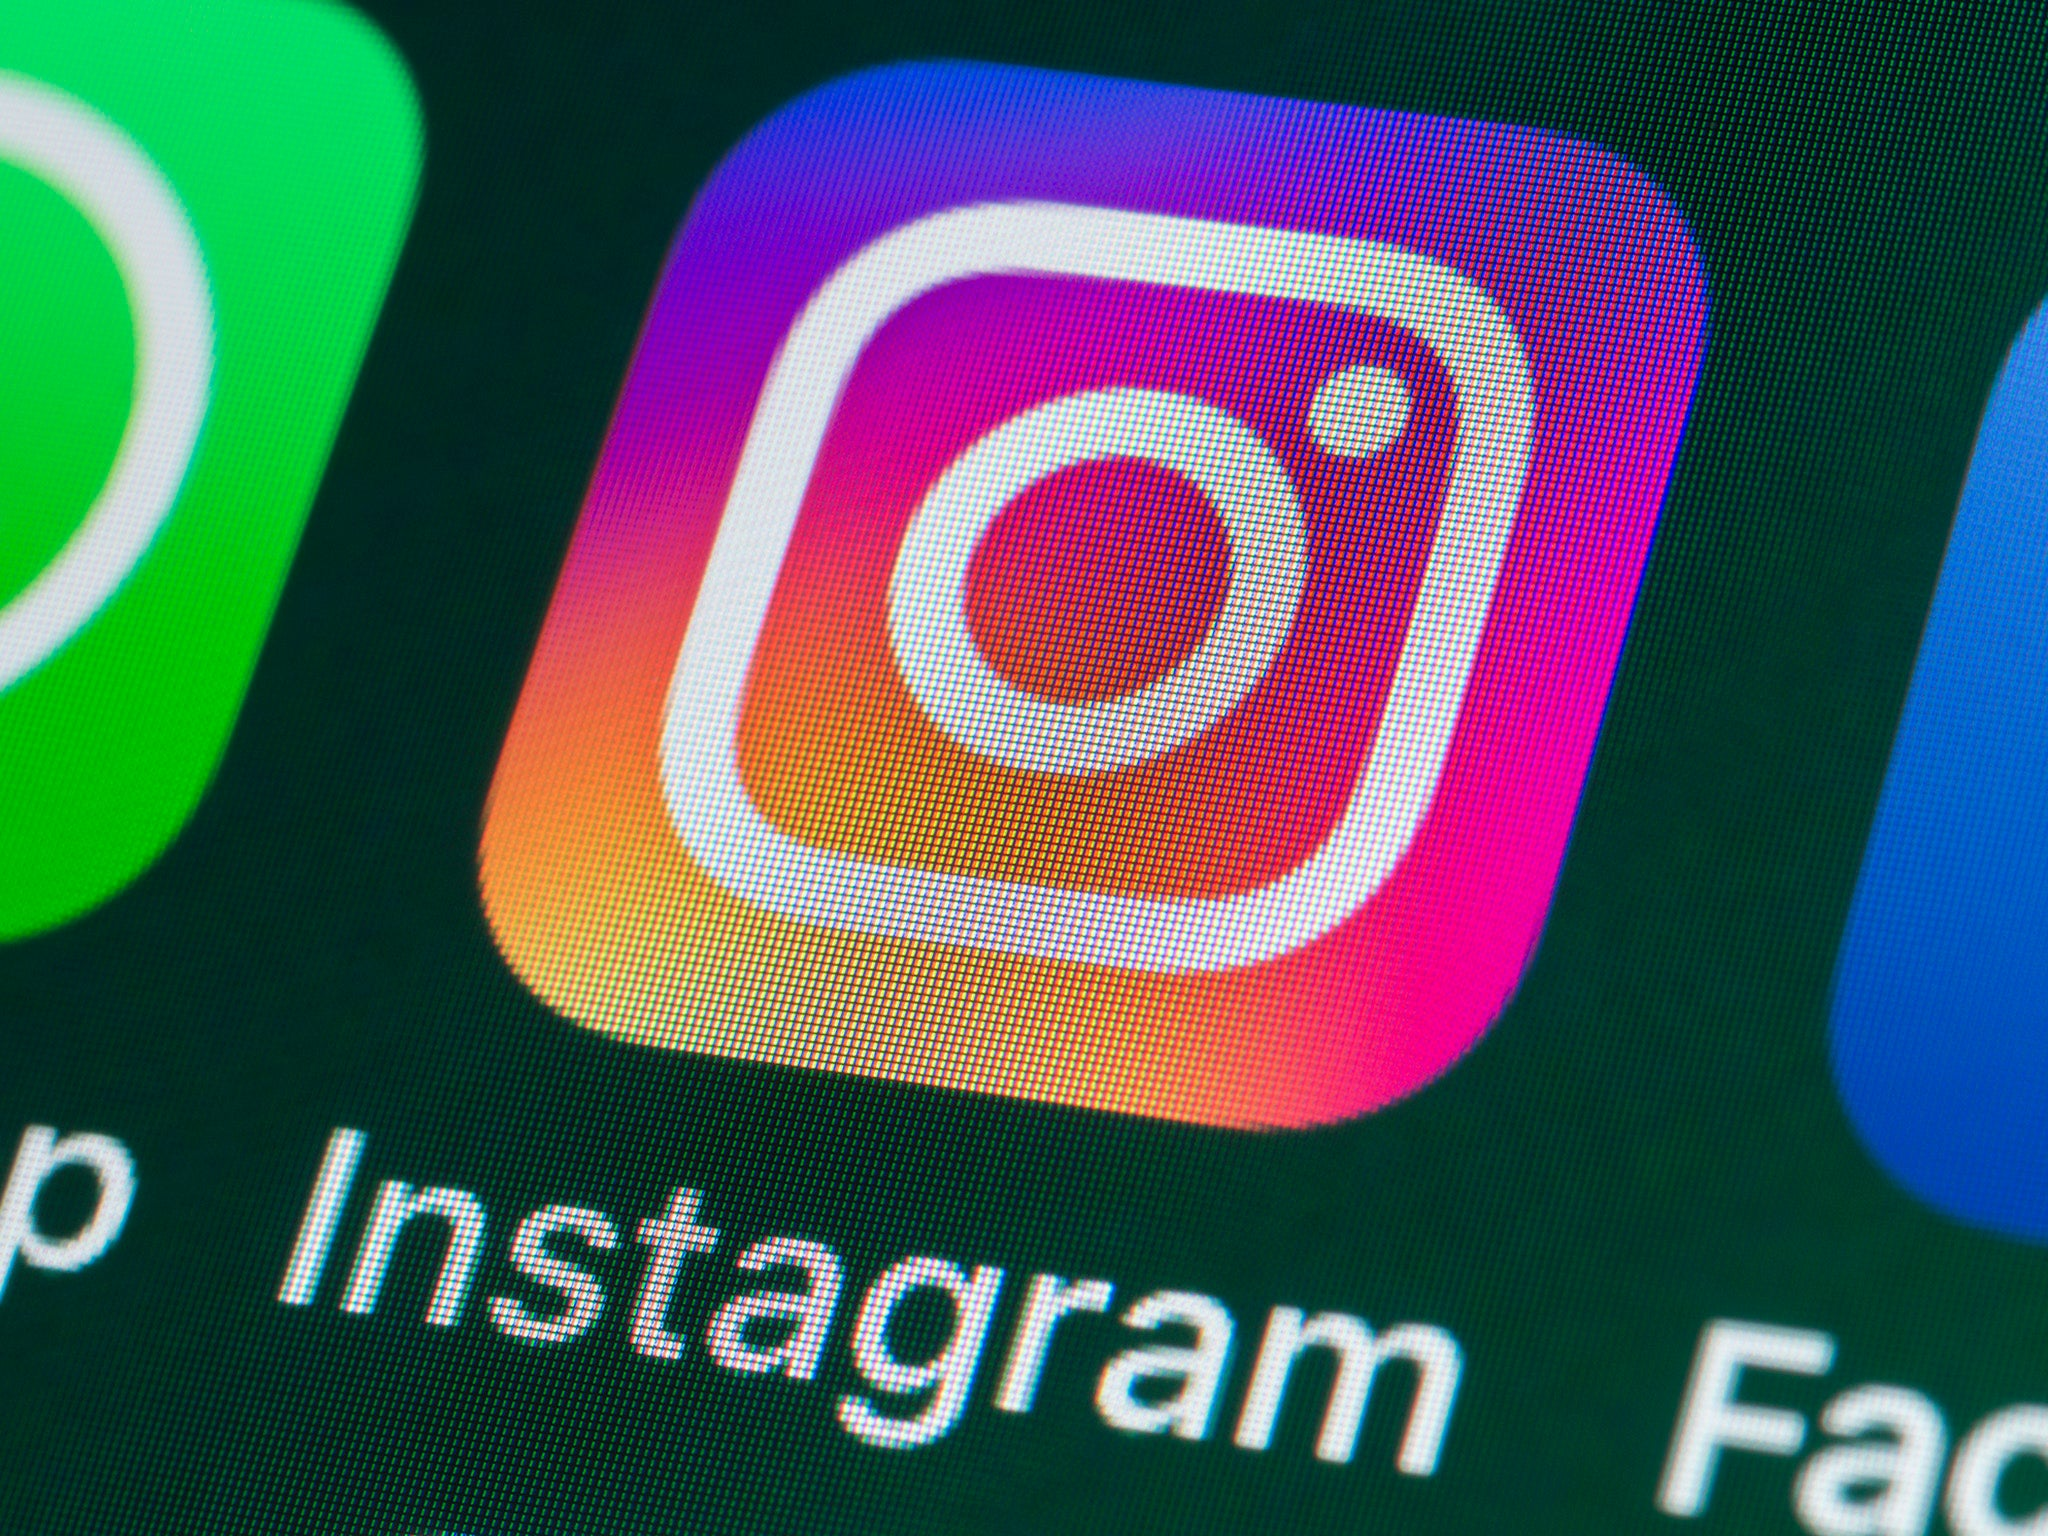 Instagram update was a 'very small test' rolled out to